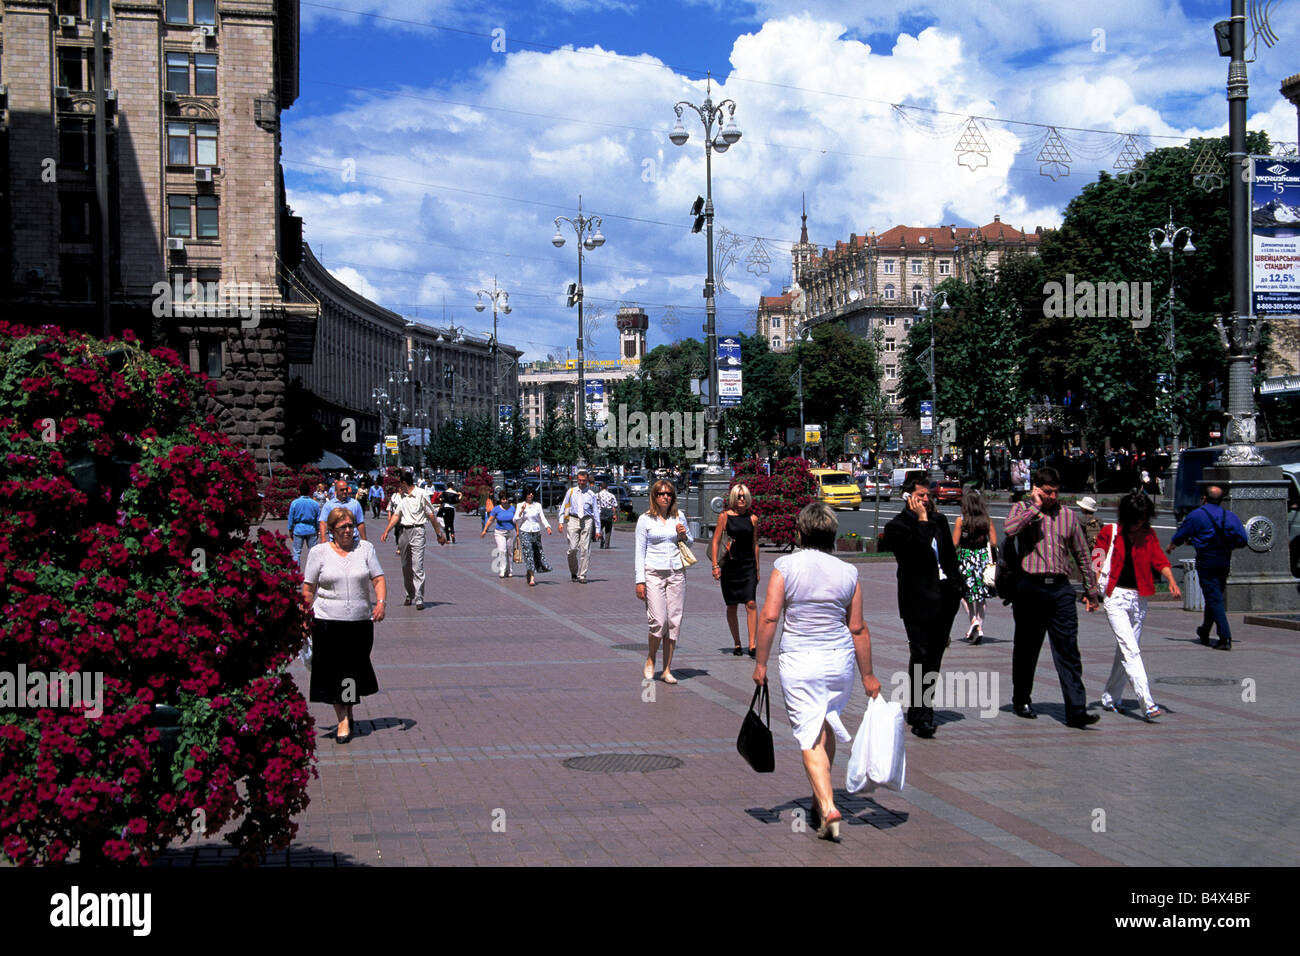 People walking in Khreschatyk Street in central Kiev, Ukraine - Stock Image